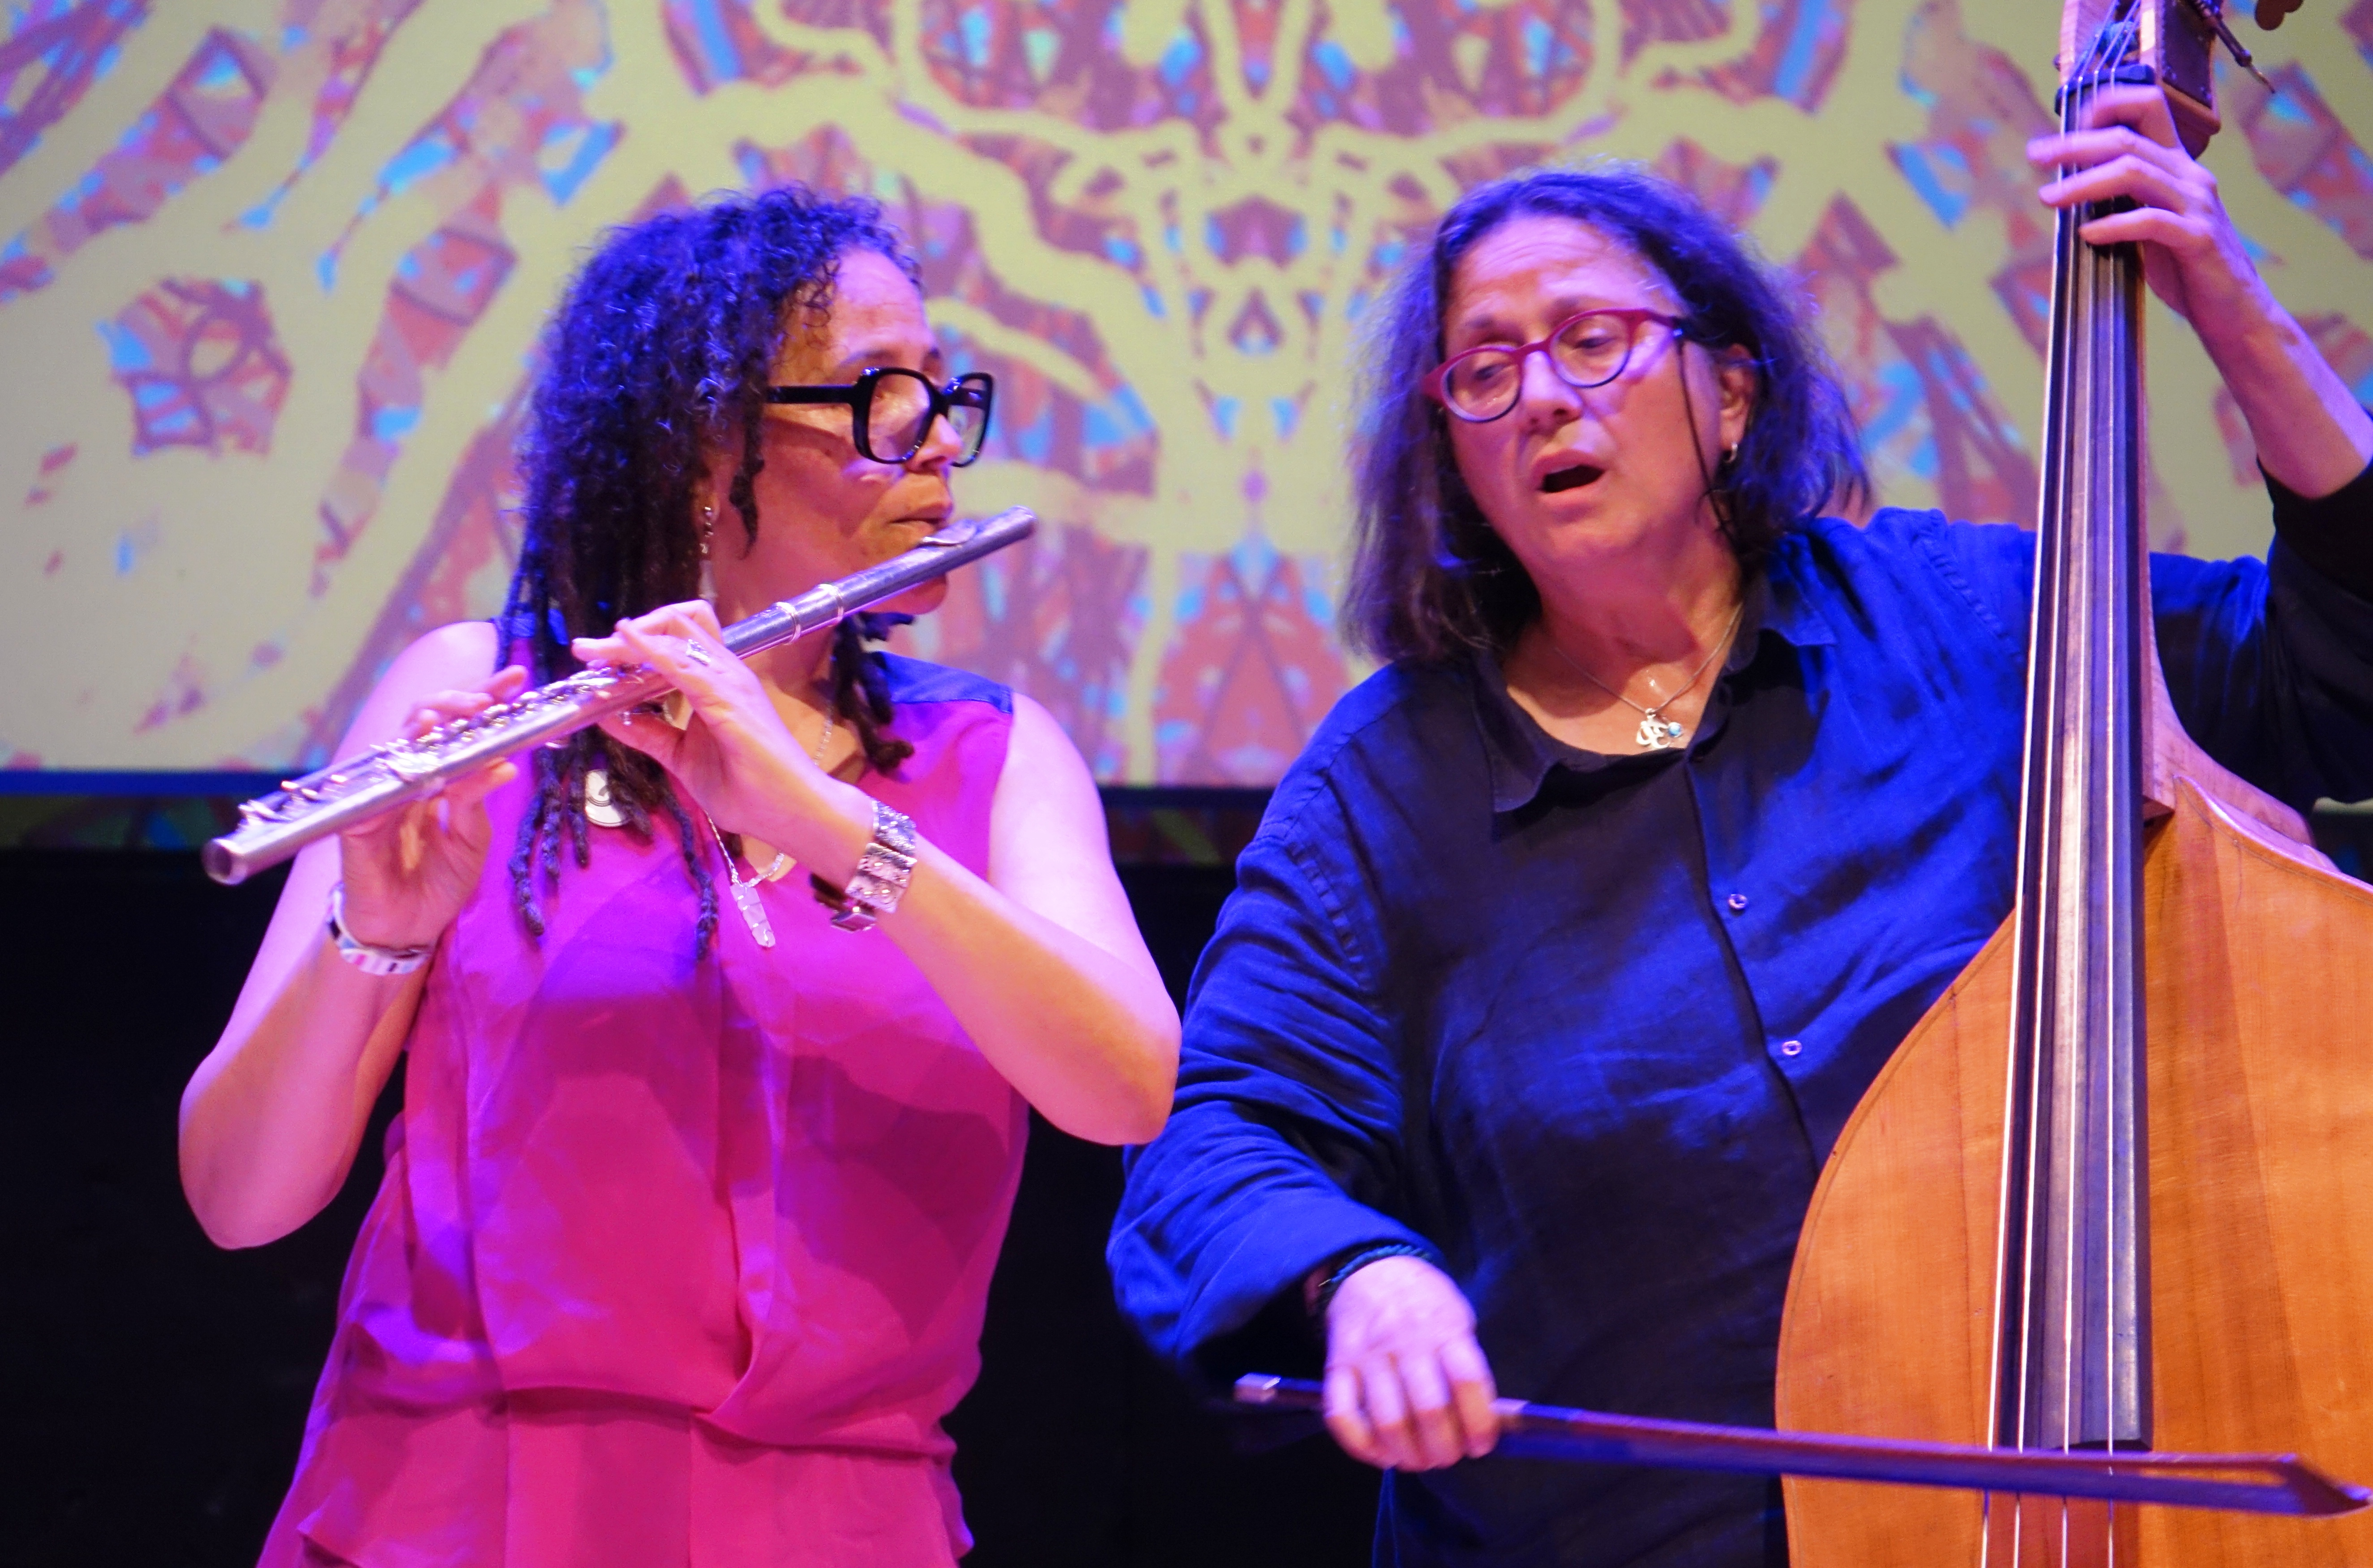 Nicole Mitchell and Joelle Leandre at Roulette, Brooklyn in May 2018